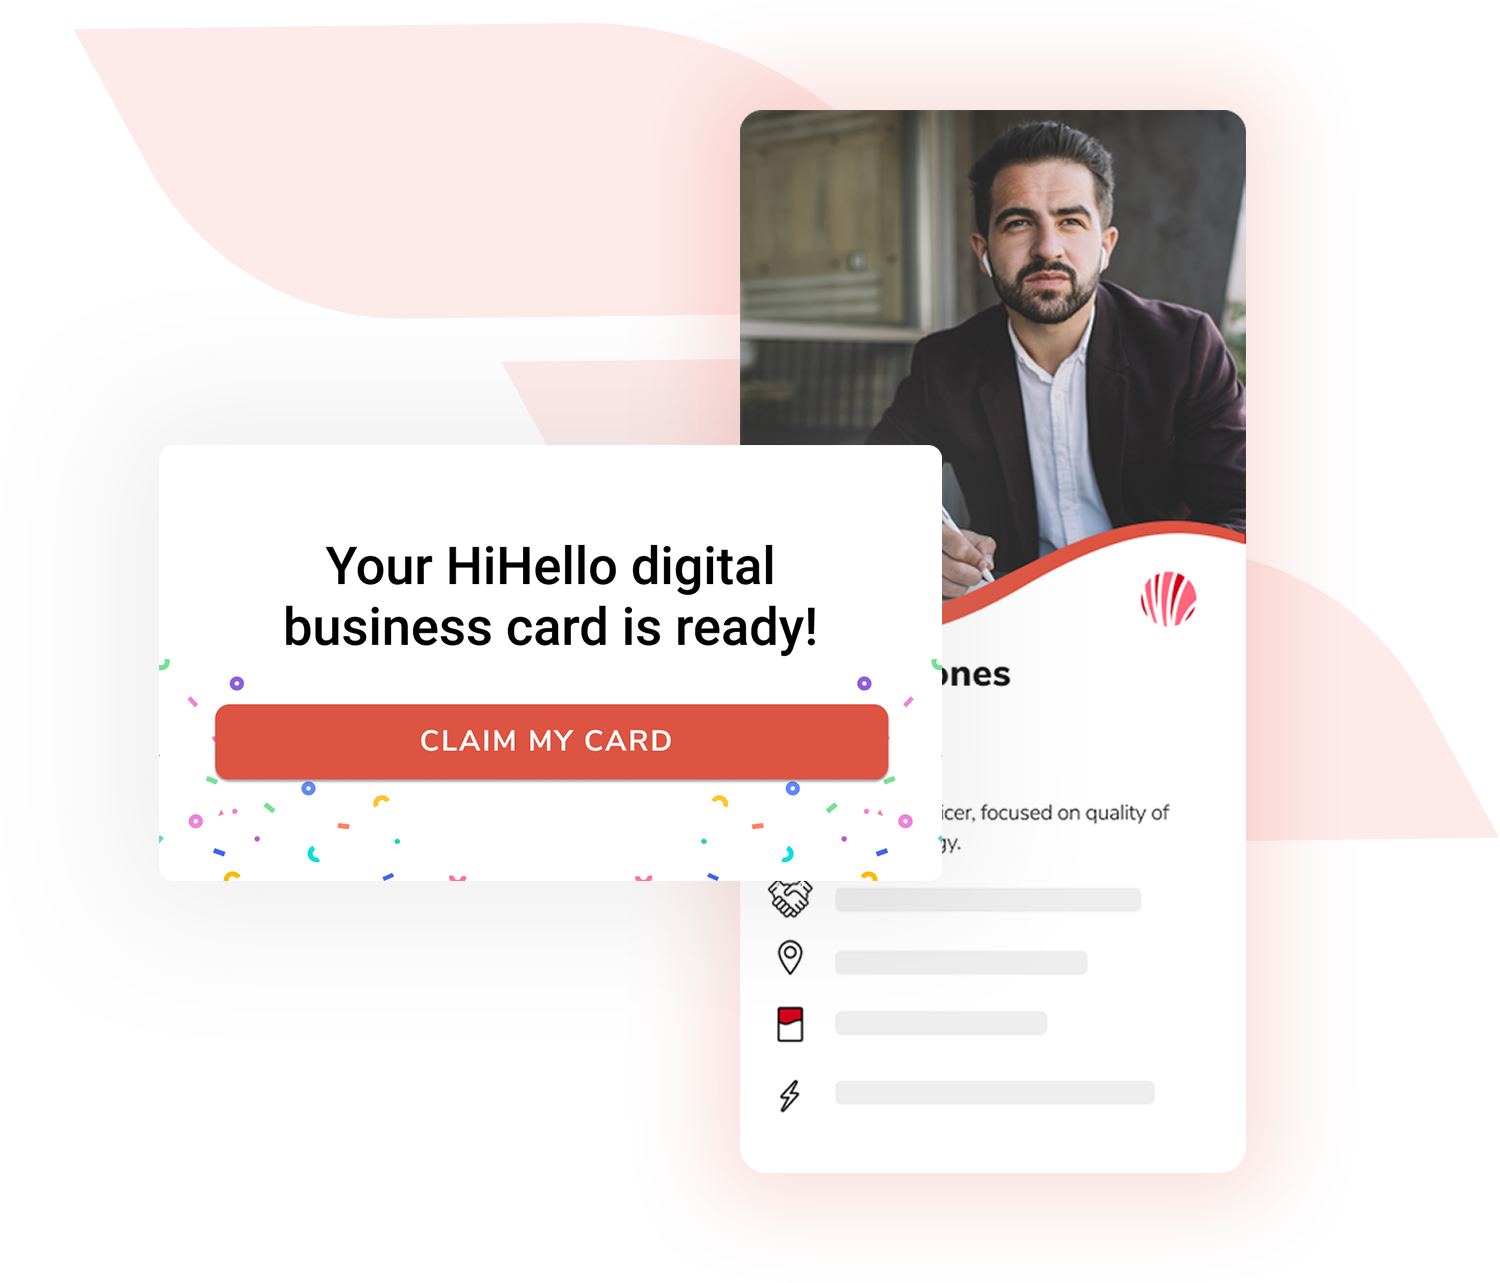 HiHello for Business onboarding. Send you employees an email where they can claim their new company digital business card.